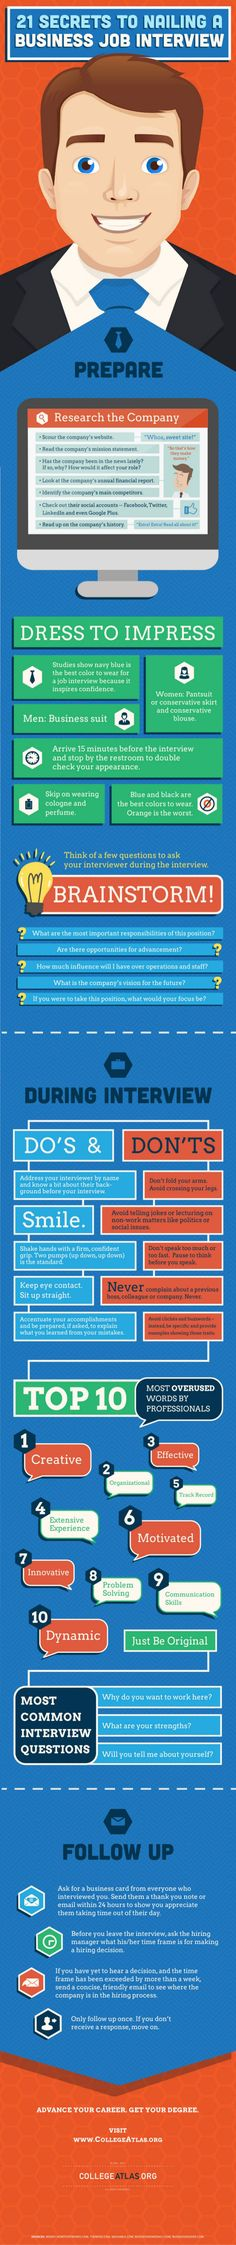 Here's how to nail a job interview. #veredus